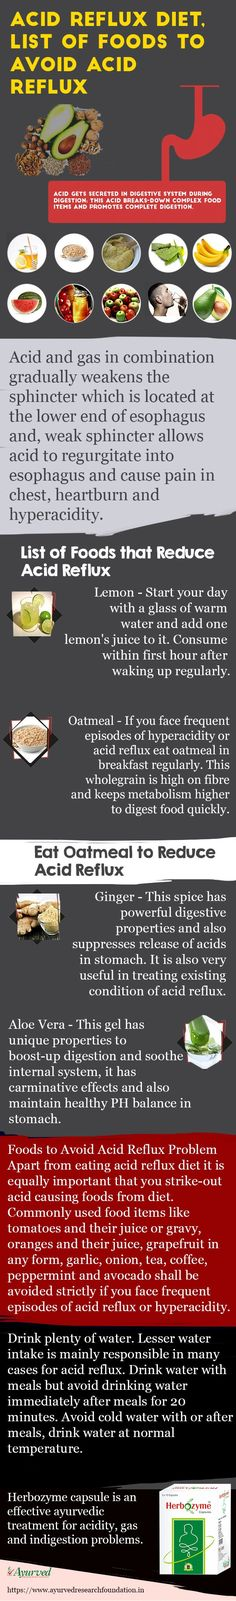 This Acid Reflux Diet Infographic Suggest List Of Best Foods That on Health & Diet Guide 7881 Foods For Heartburn, Gout Diet, Home Remedies For Heartburn, Hypothyroidism Diet, Best Smoothie, Smoothies, Acid Reflux In Children, Reflux Symptoms, Heartburn Symptoms